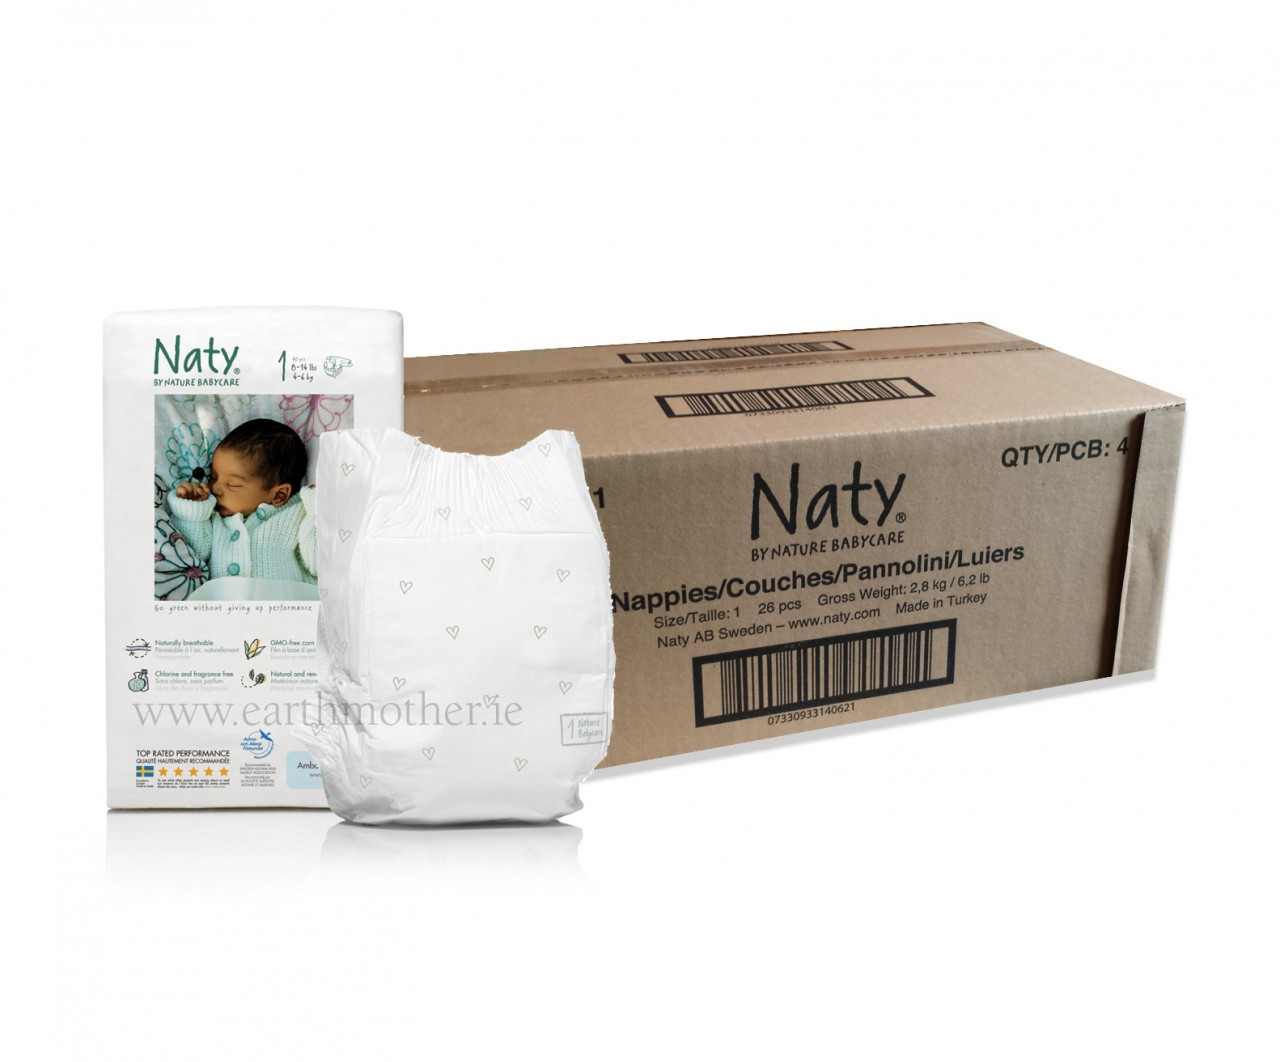 Nature Babycare Eco Nappies Value Box Earthmotherie